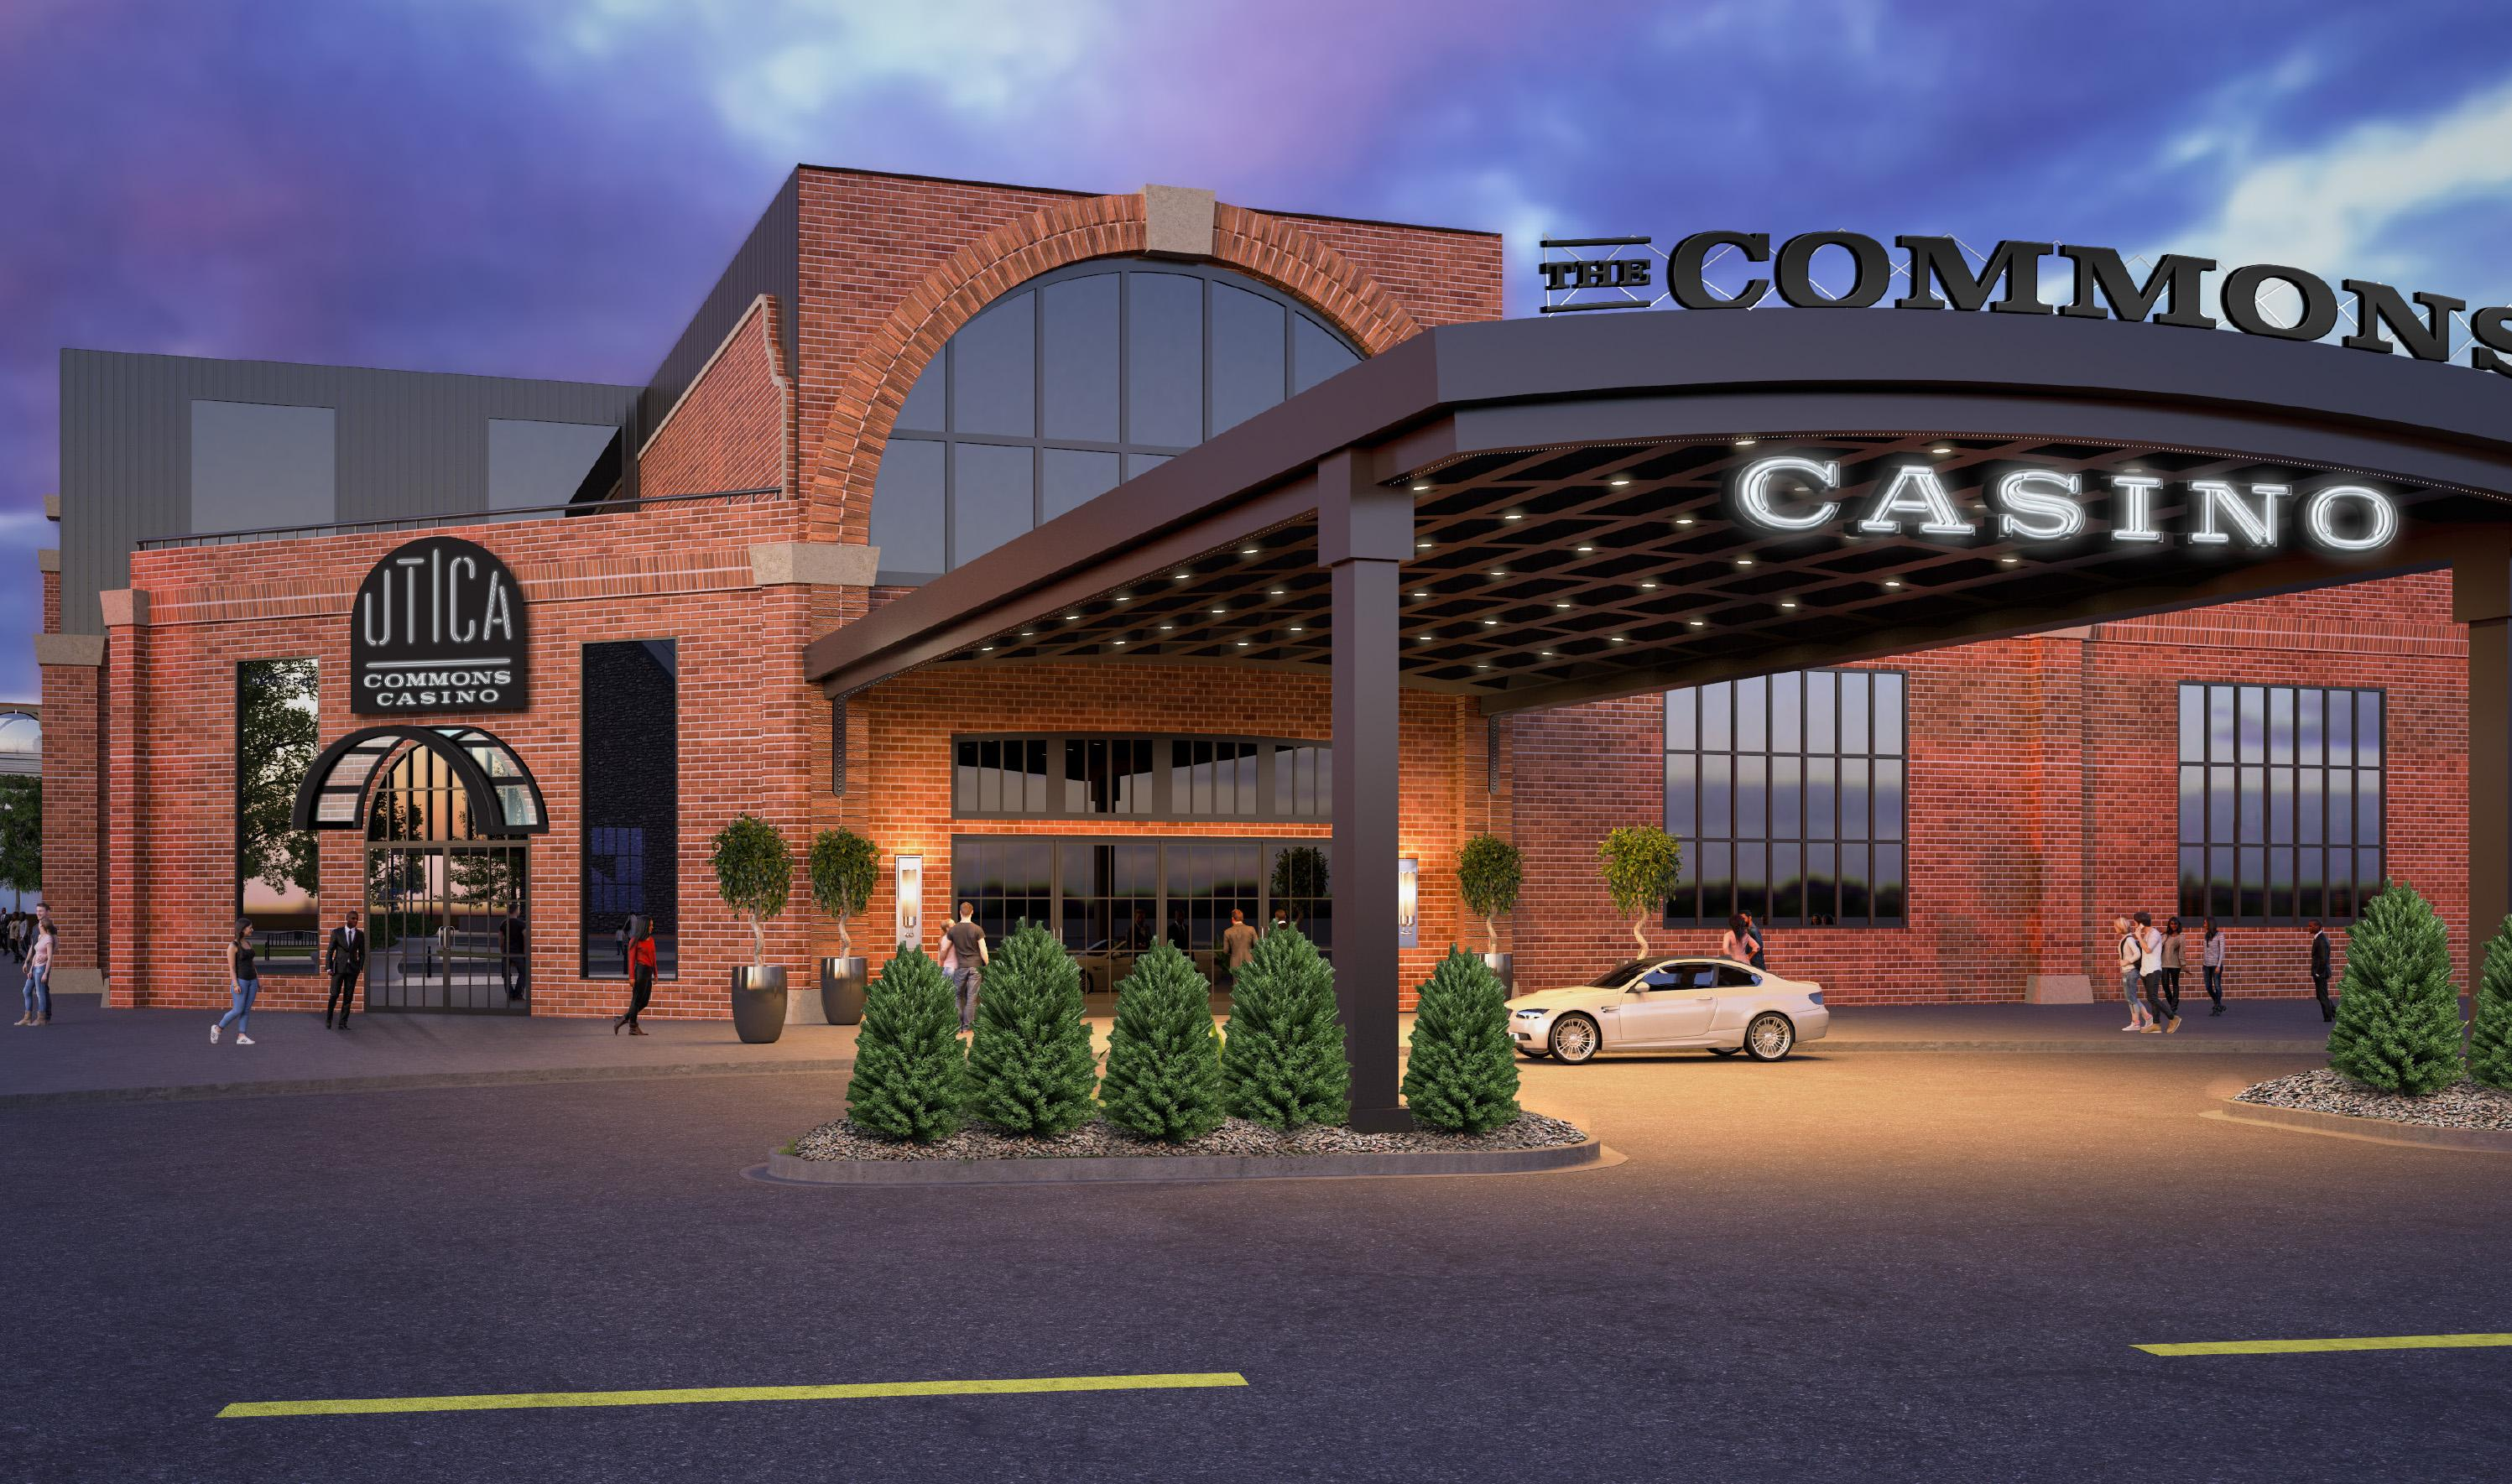 Rendering of proposed Utica Commons Casino in Utica (Photo courtesy of Utica Comets)<p></p>